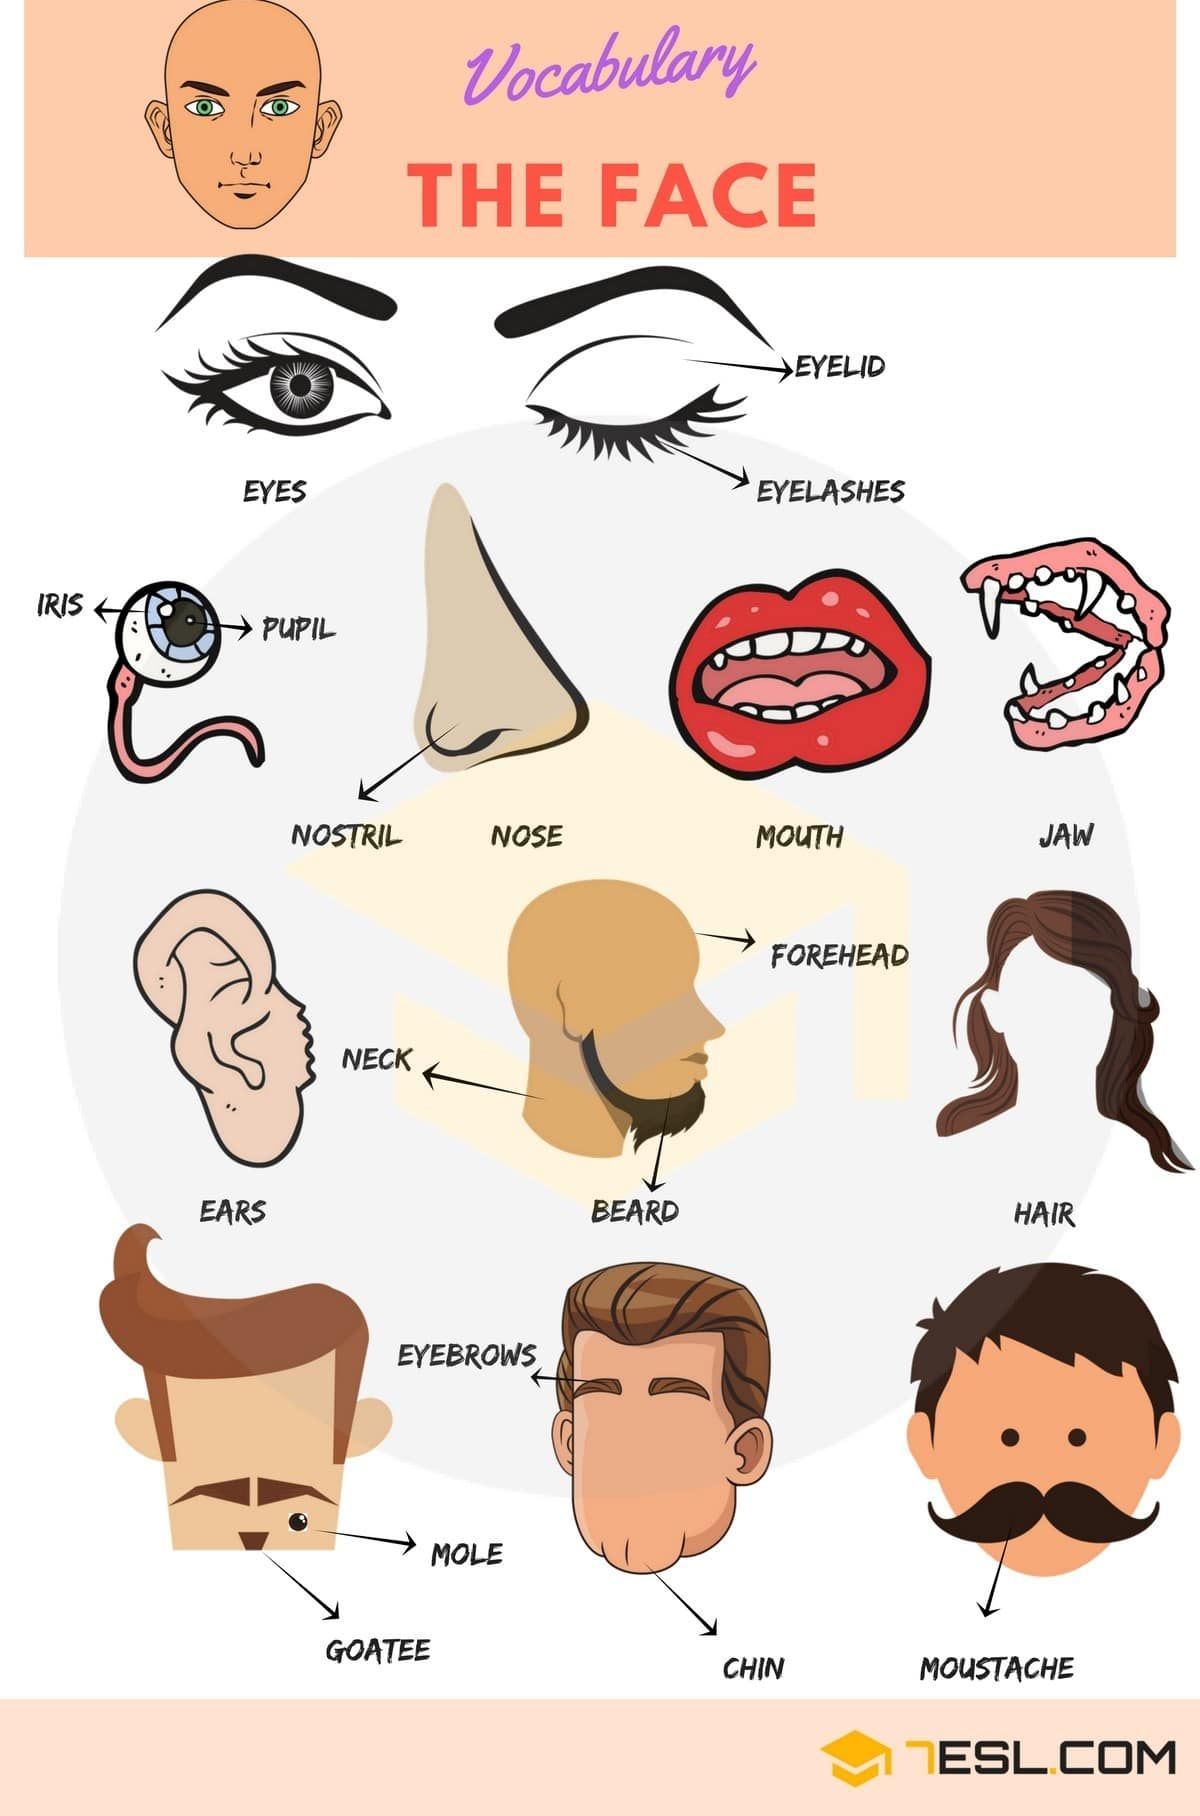 Parts Of The Face Useful Face Parts Names With Pictures